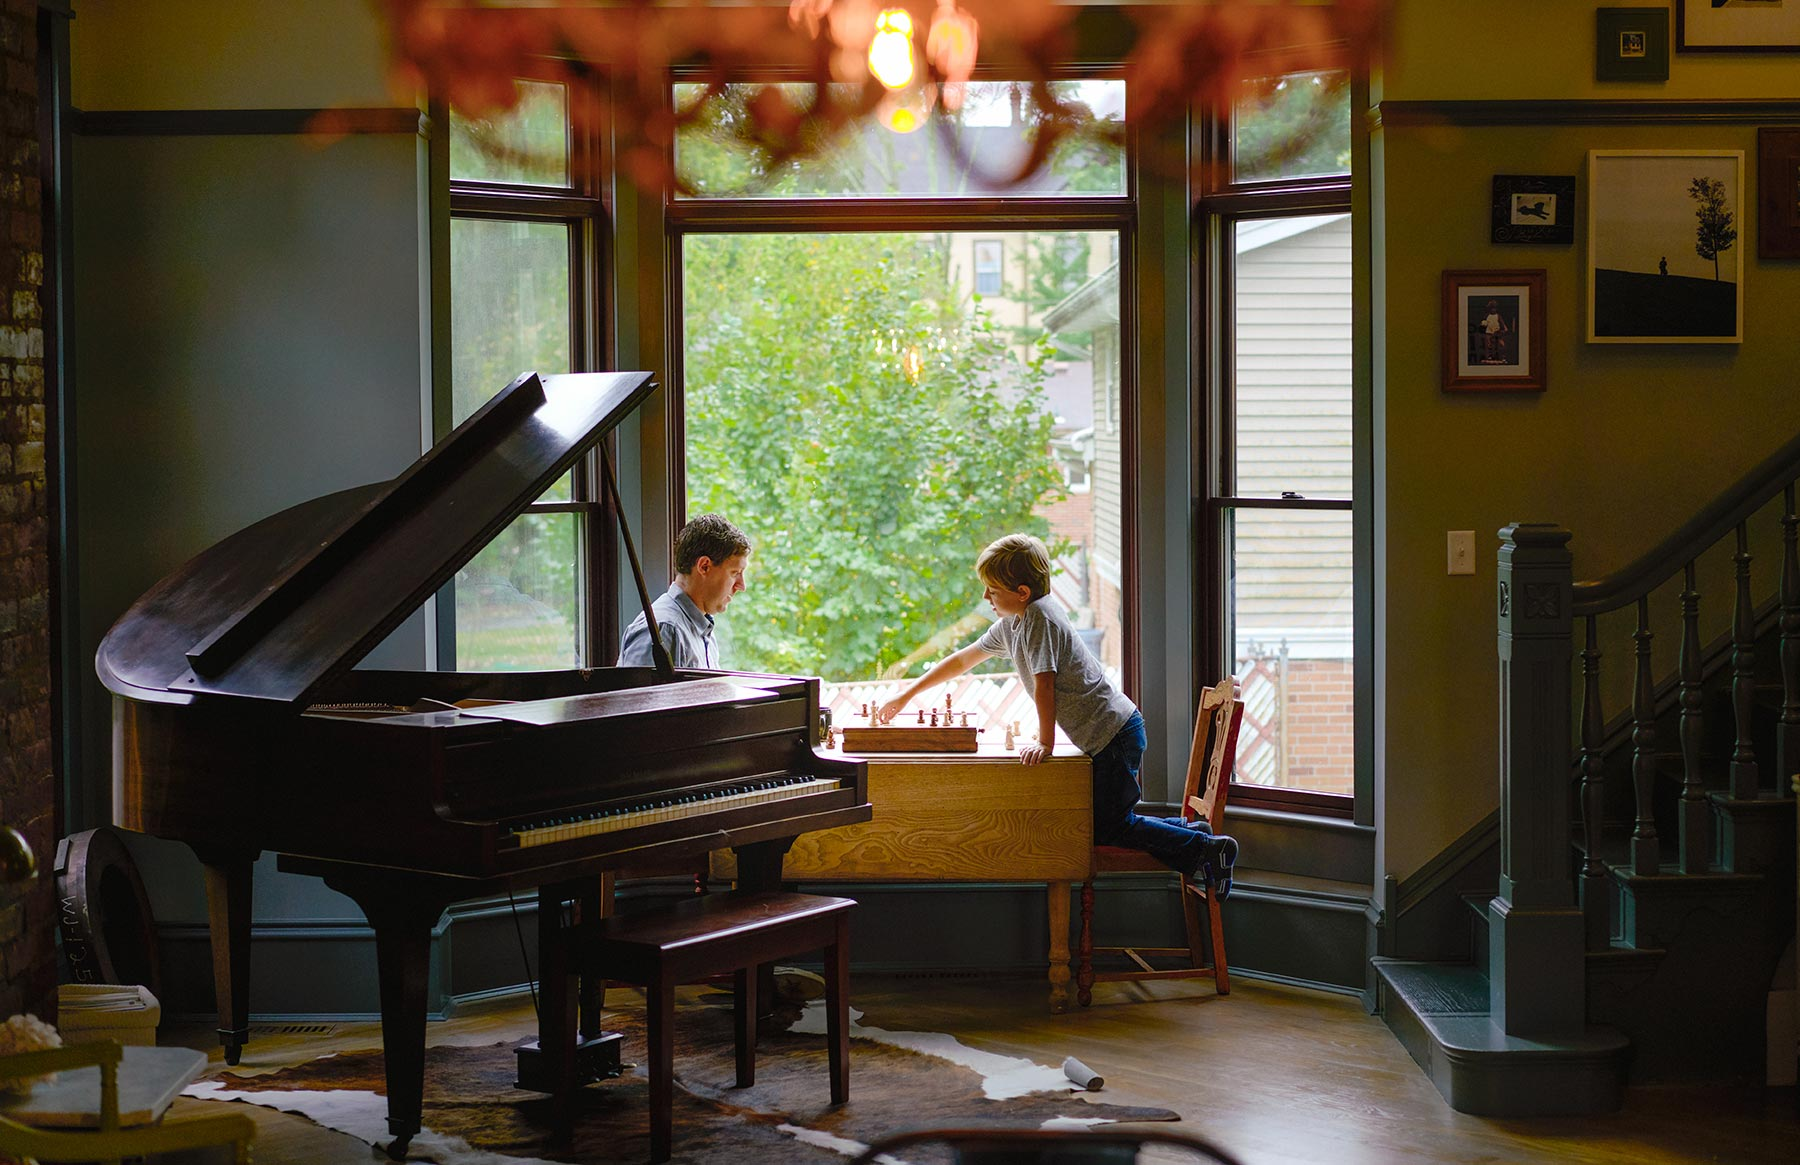 A-father-and-son-playing-chess-between-a-grand-piano-and-a-large-window-in-the-living-room-of-their-house